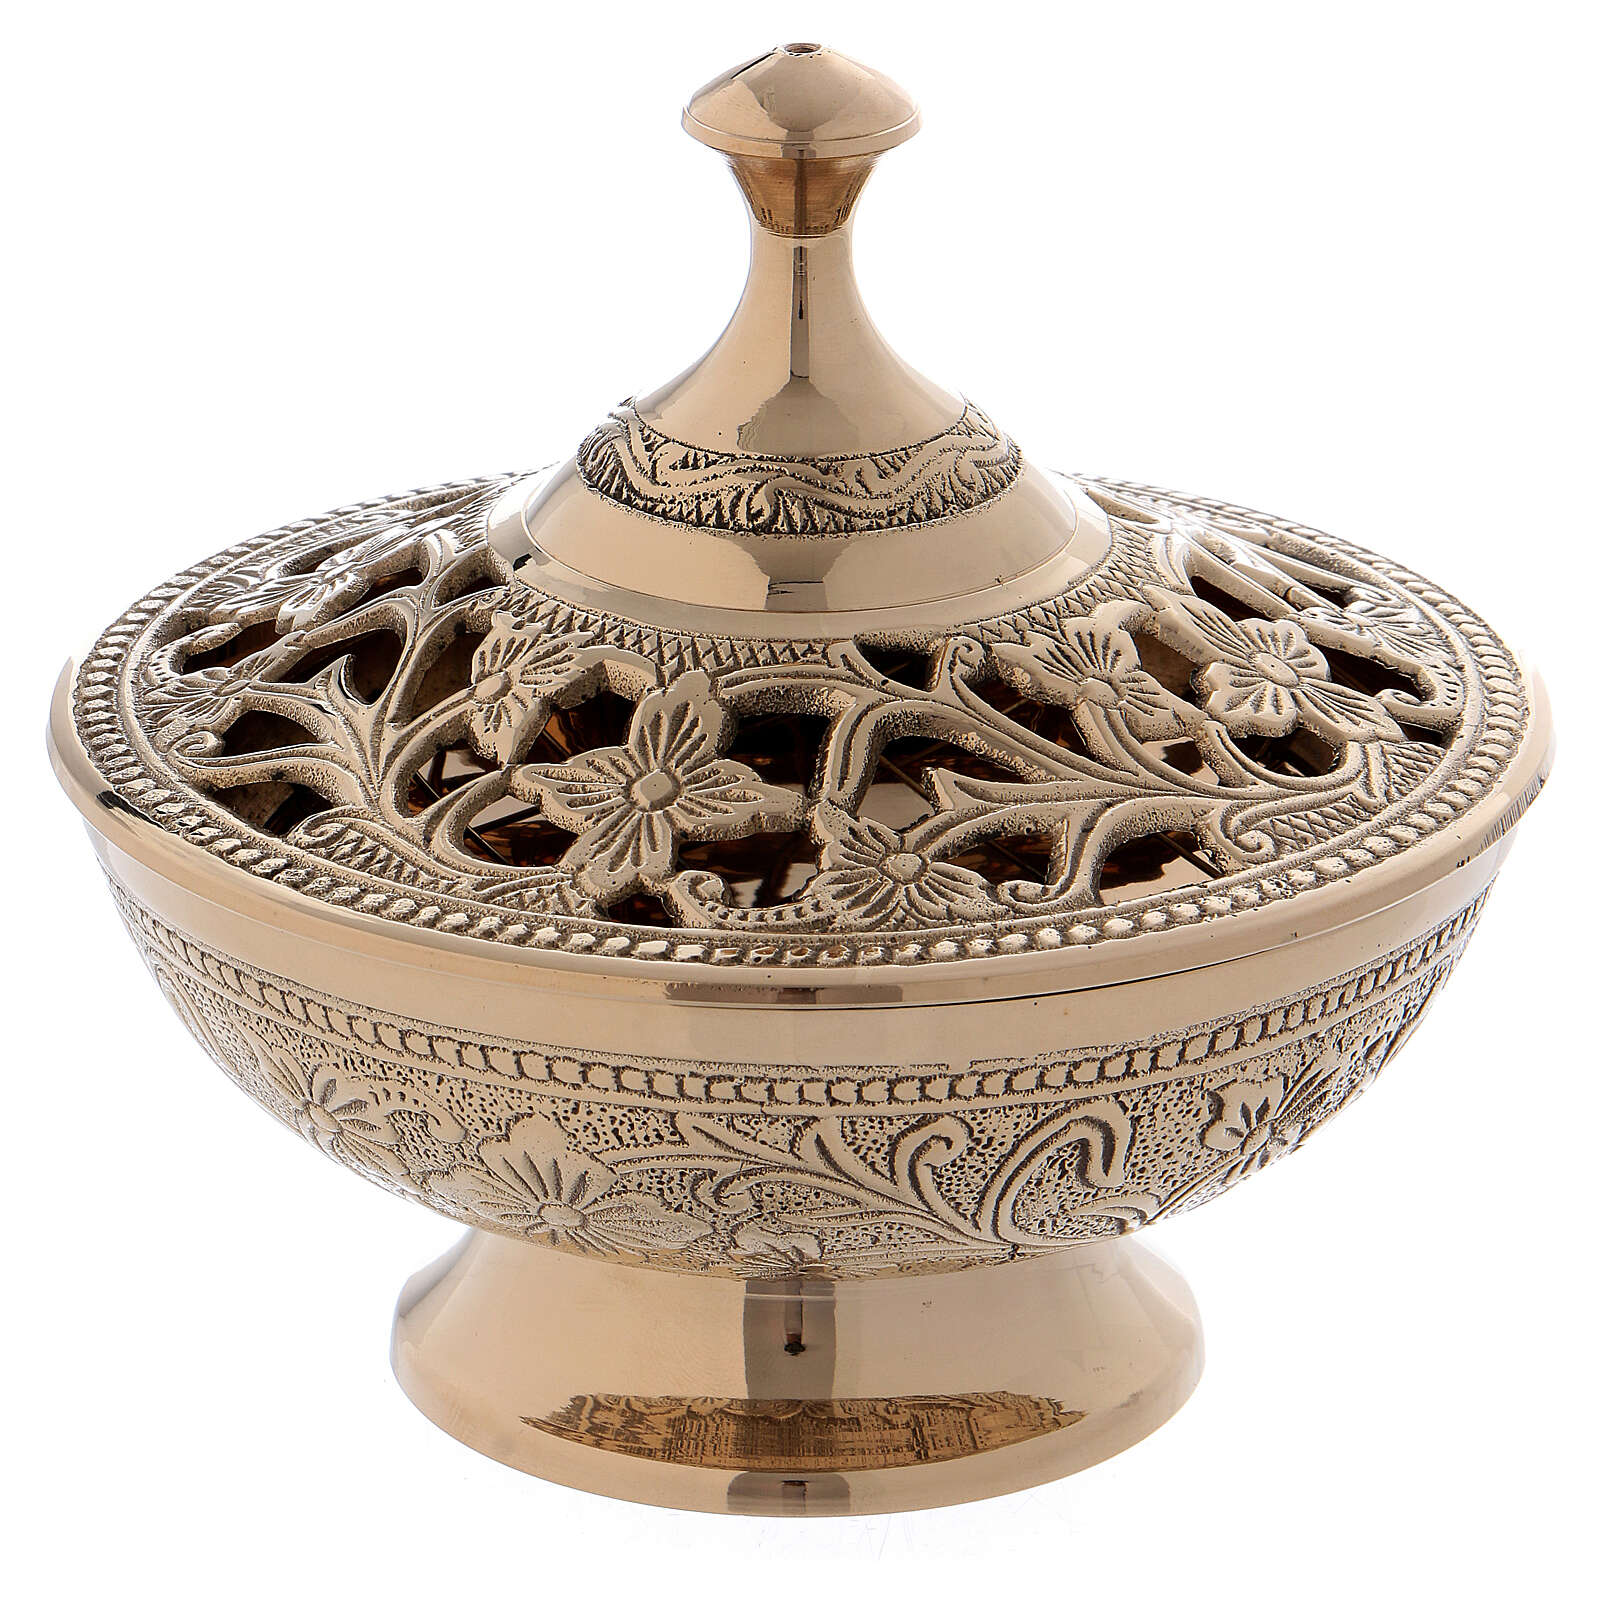 Gold plated brass incense burner decorations and floral carvings 3